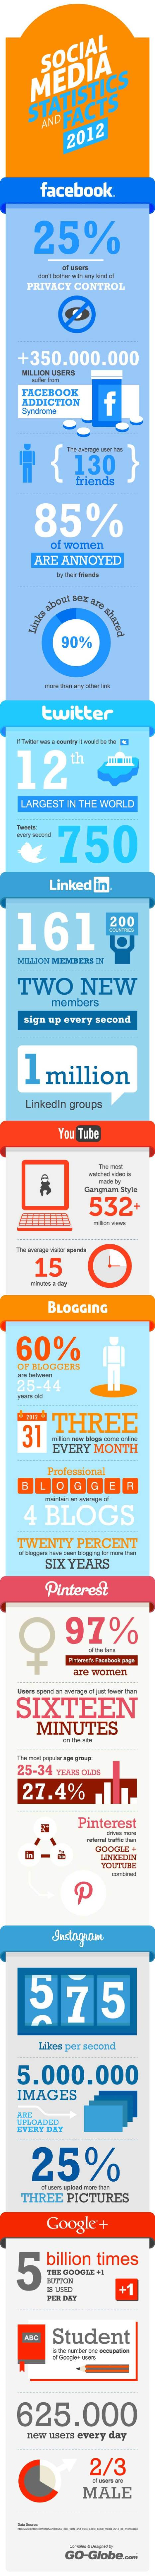 The Latest 27 Social Media Facts, Figures and Statistics for 2012 - Infographic | cassyput on marketing | Scoop.it